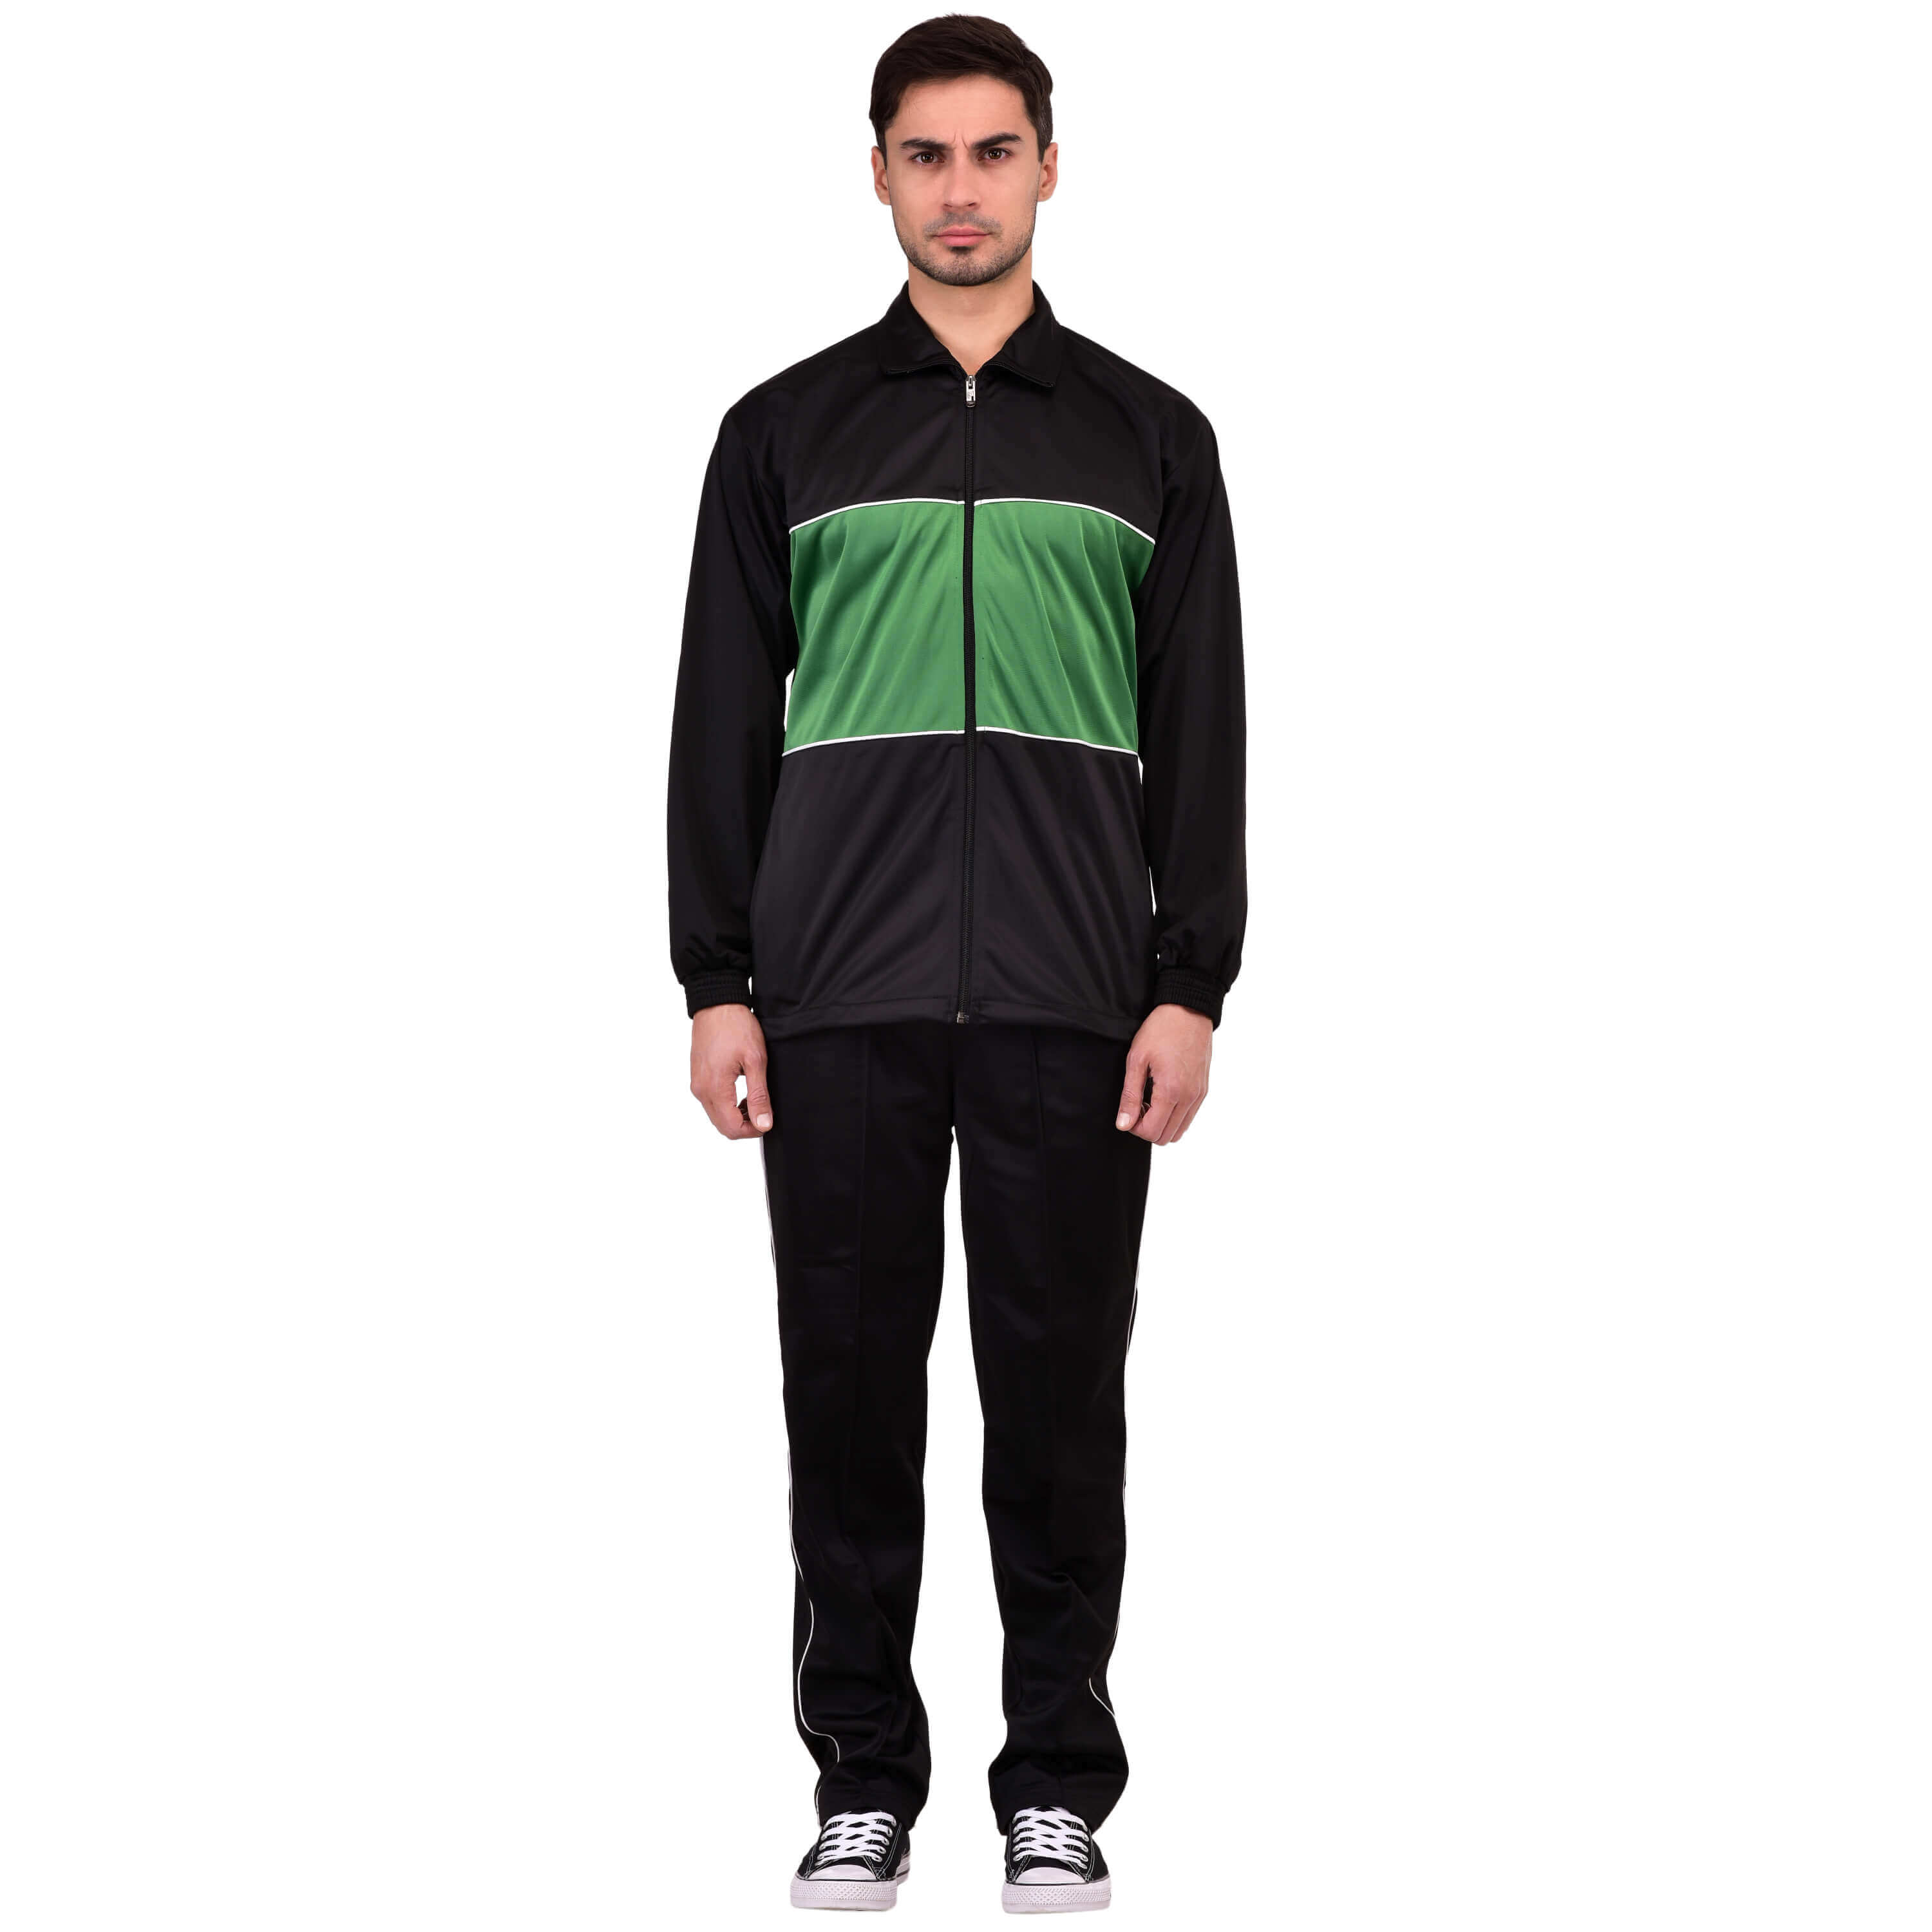 Full Tracksuit Manufacturers in Nanded